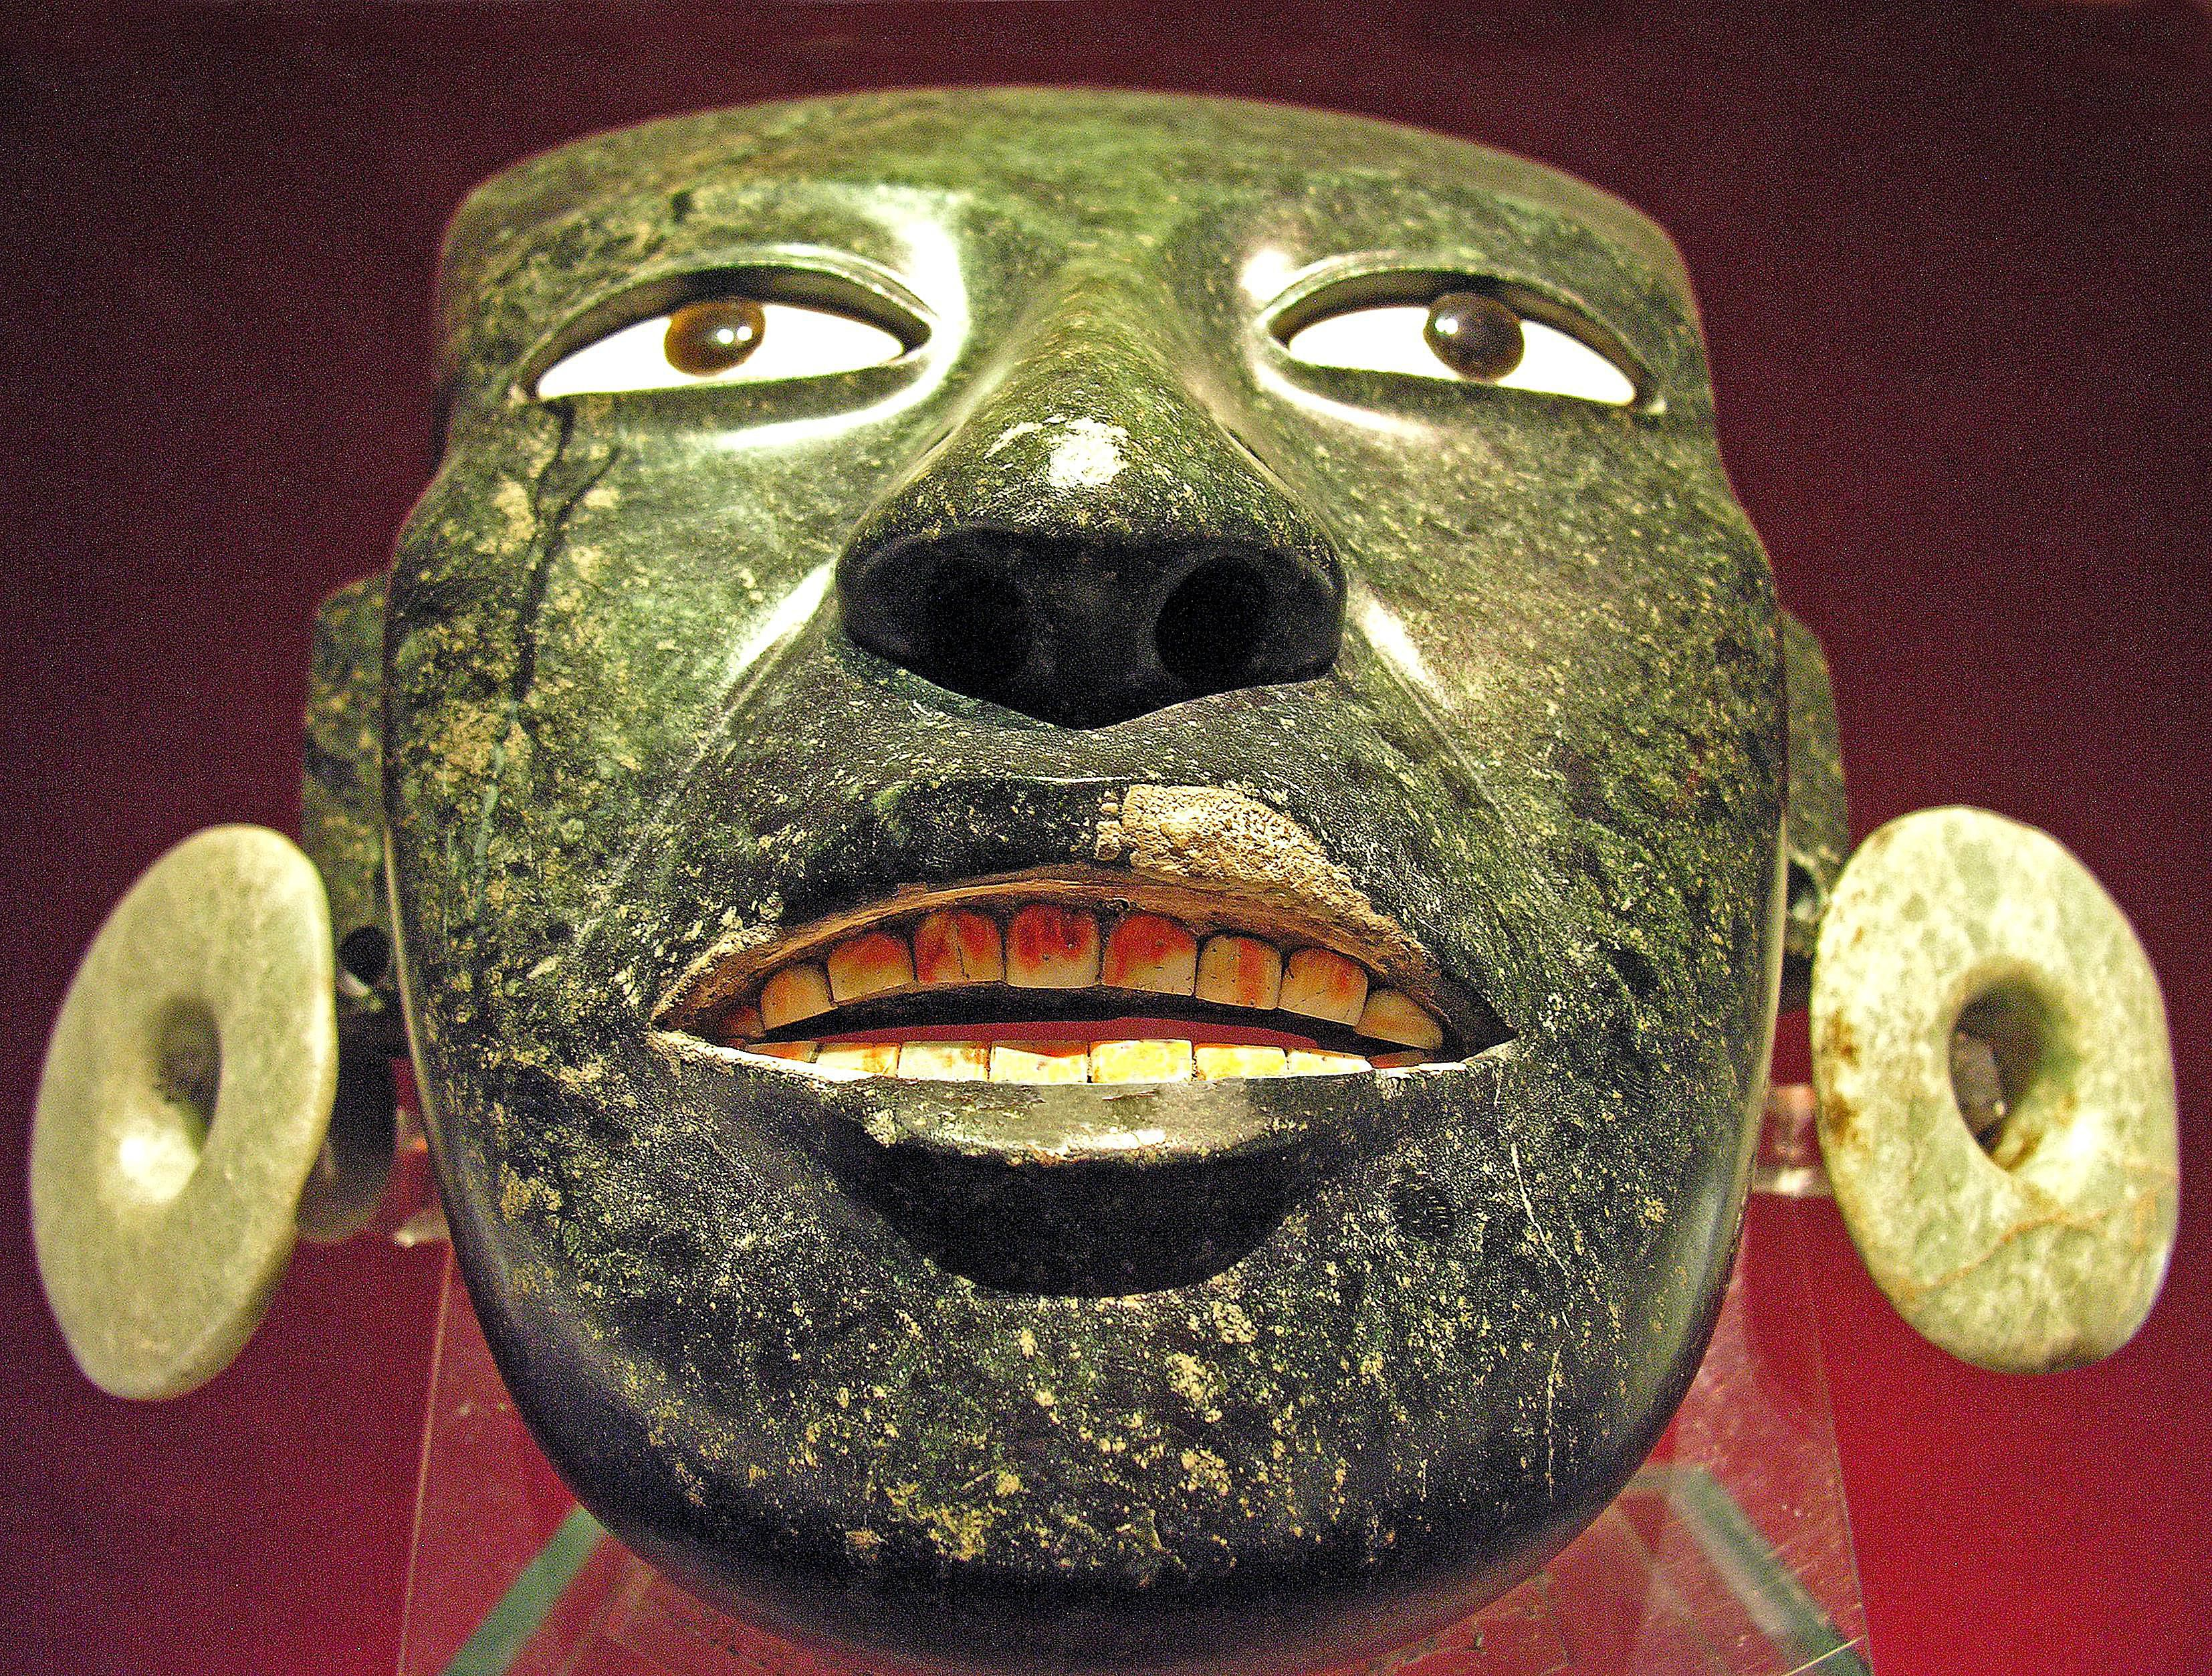 Aztec mask from Mexico